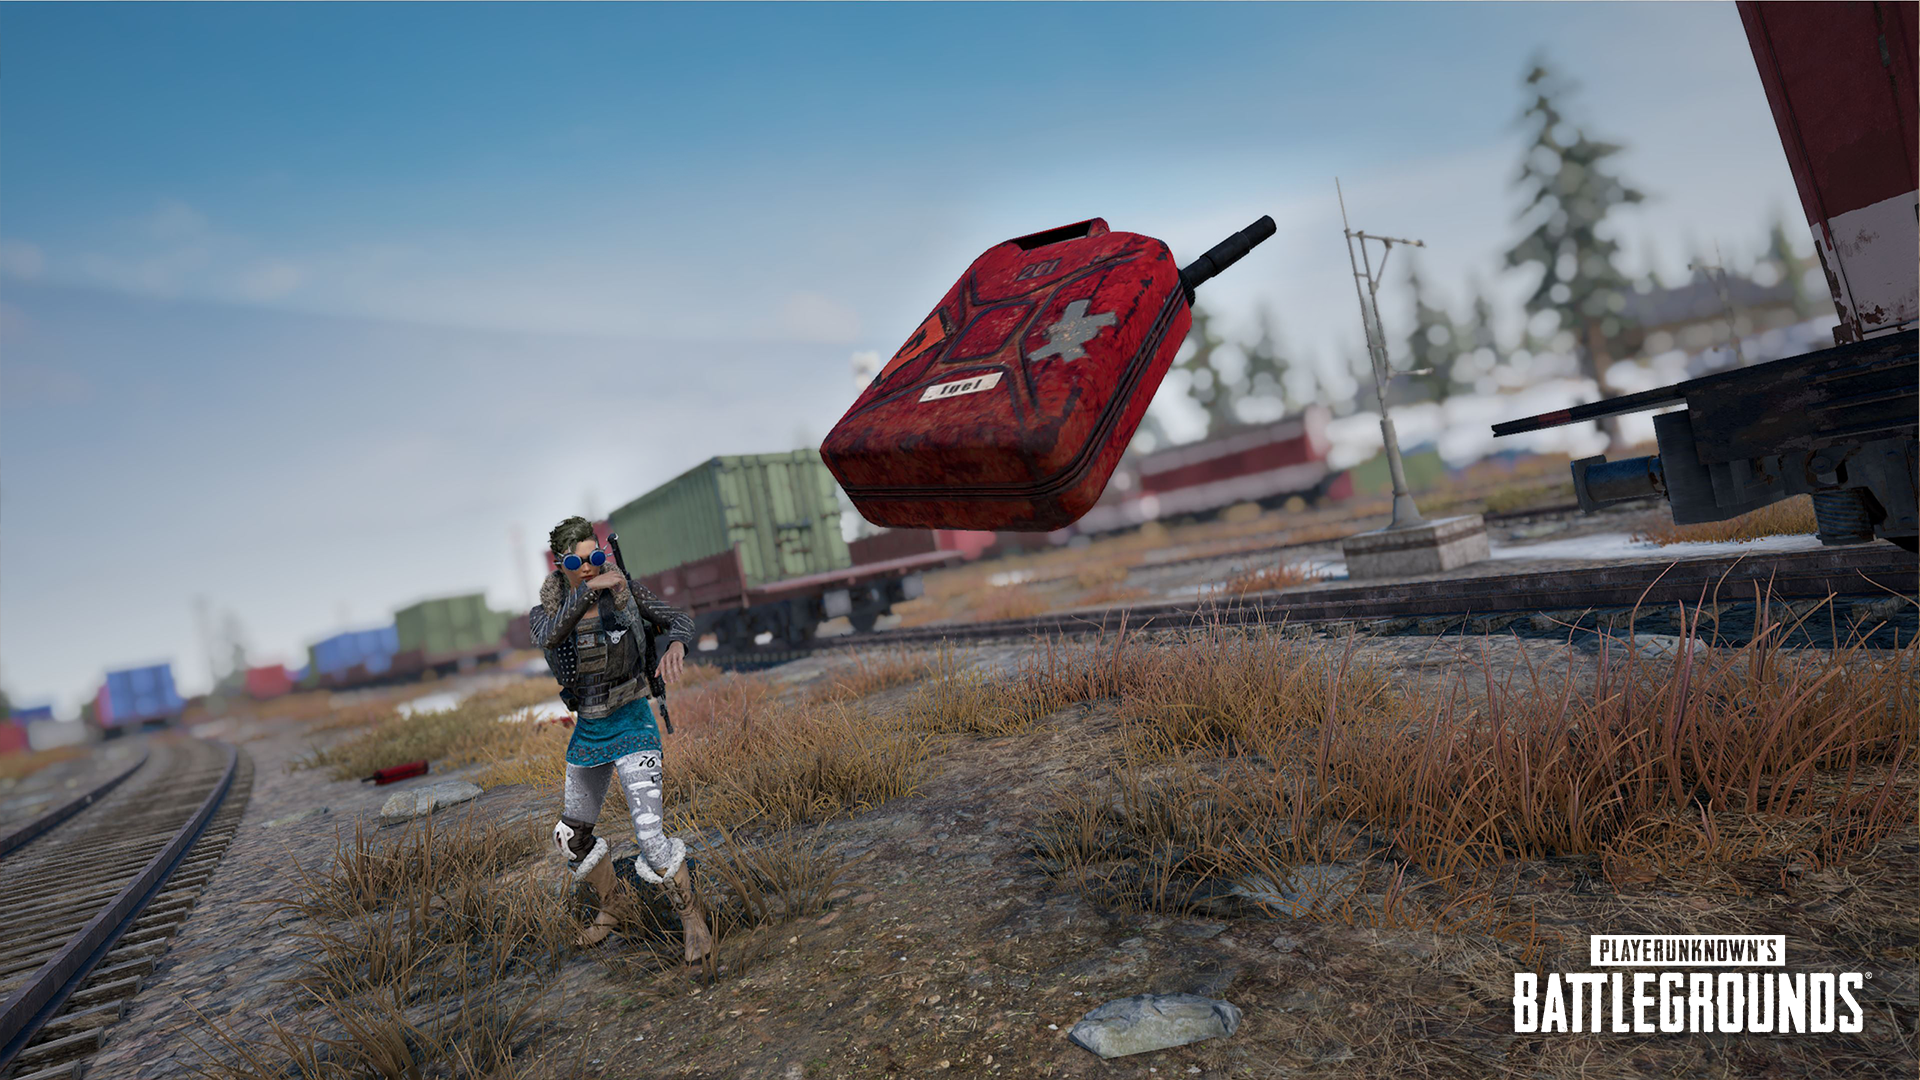 PUBG adds Ranked Mode, ignitible Jerry Cans, and weapon balancing in Update 7.2